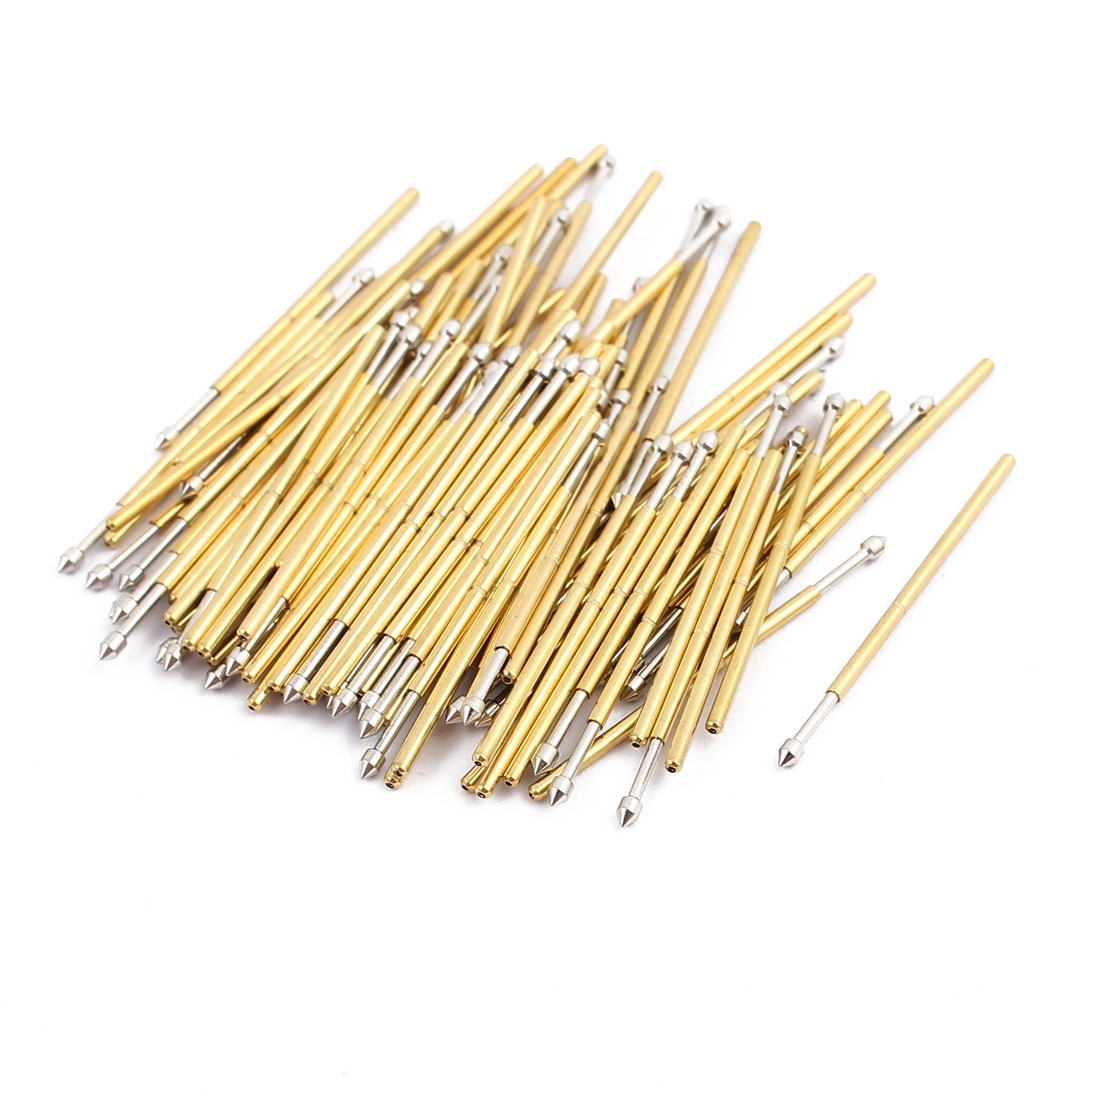 100pcs PM75-E2 1.02mm Dia 27.8mm Length Metal Spring Pressure Test Probe Needle